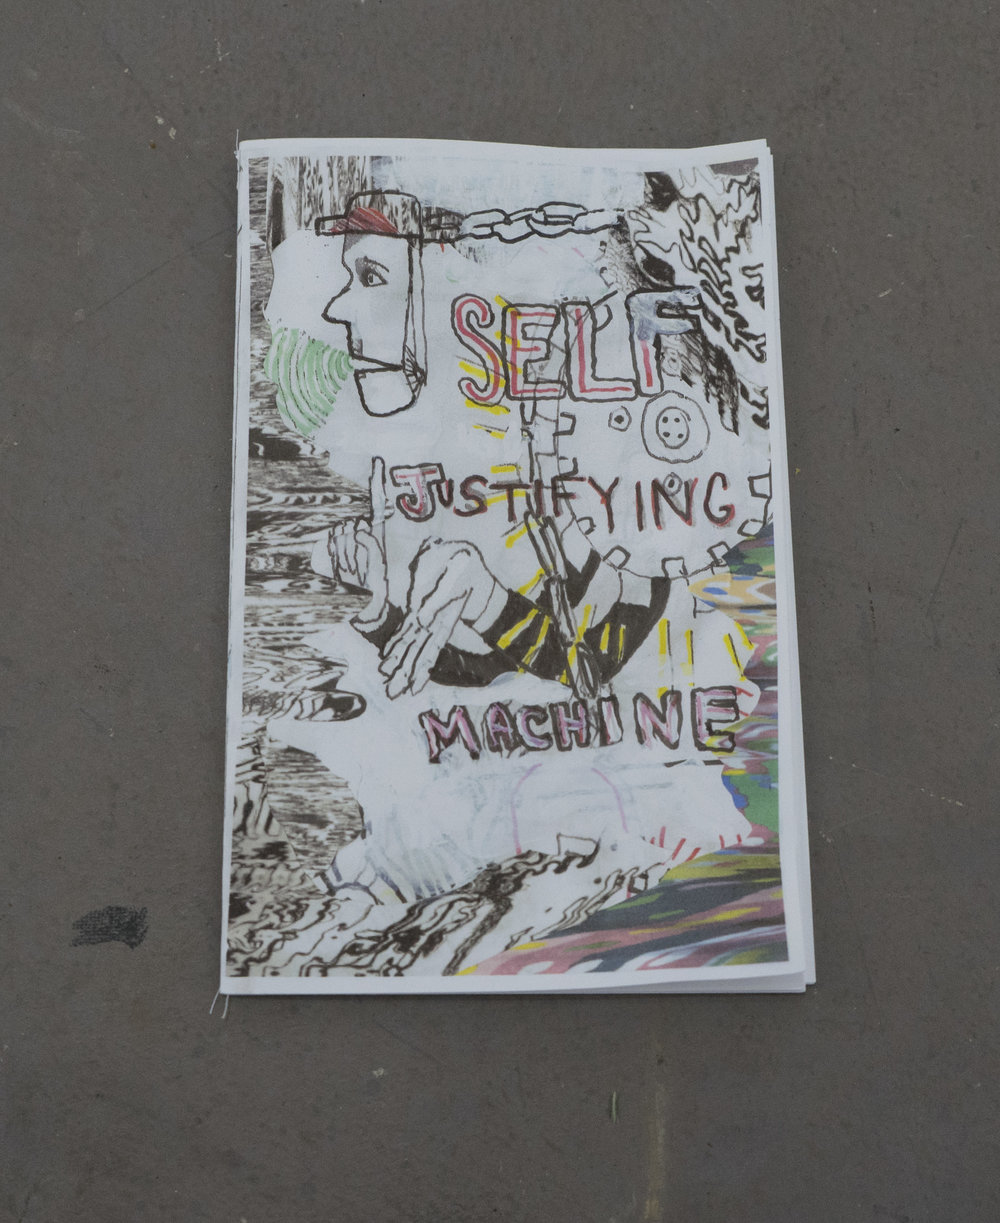 Self Justifying Machine  - zine by Matt Christy